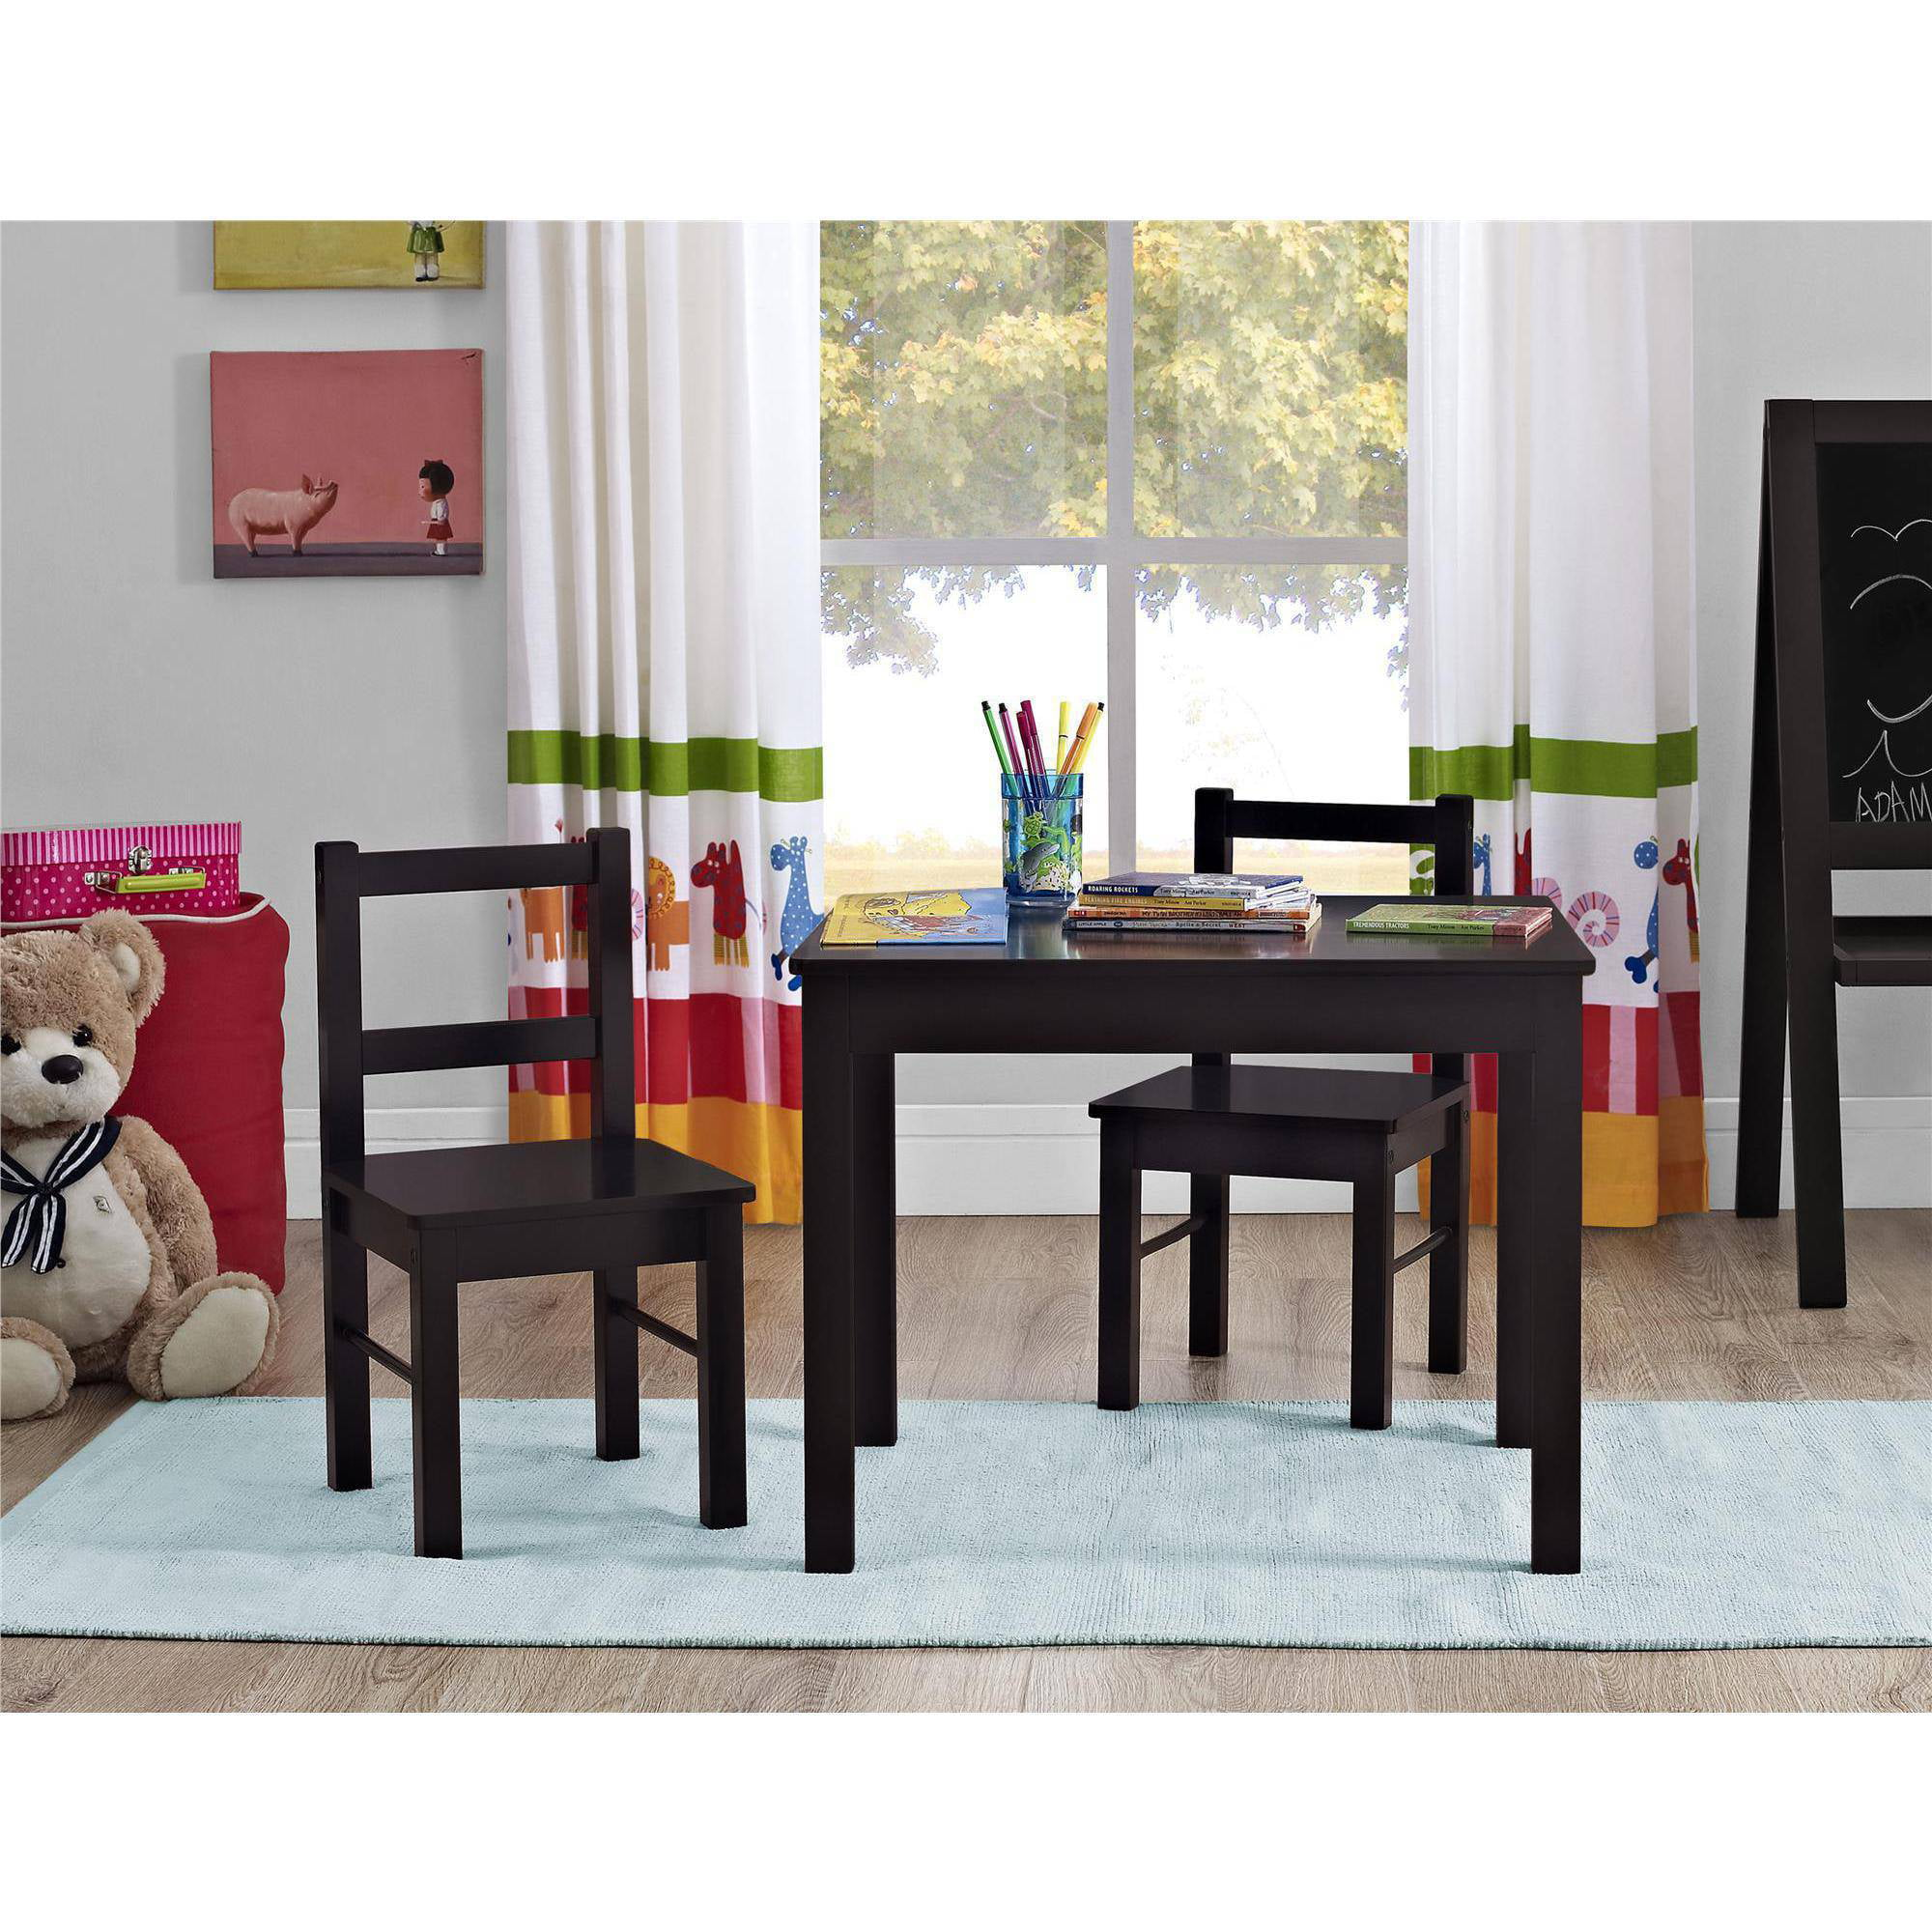 Ameriwood Home Hazel Kids Table and Chairs Set Espresso